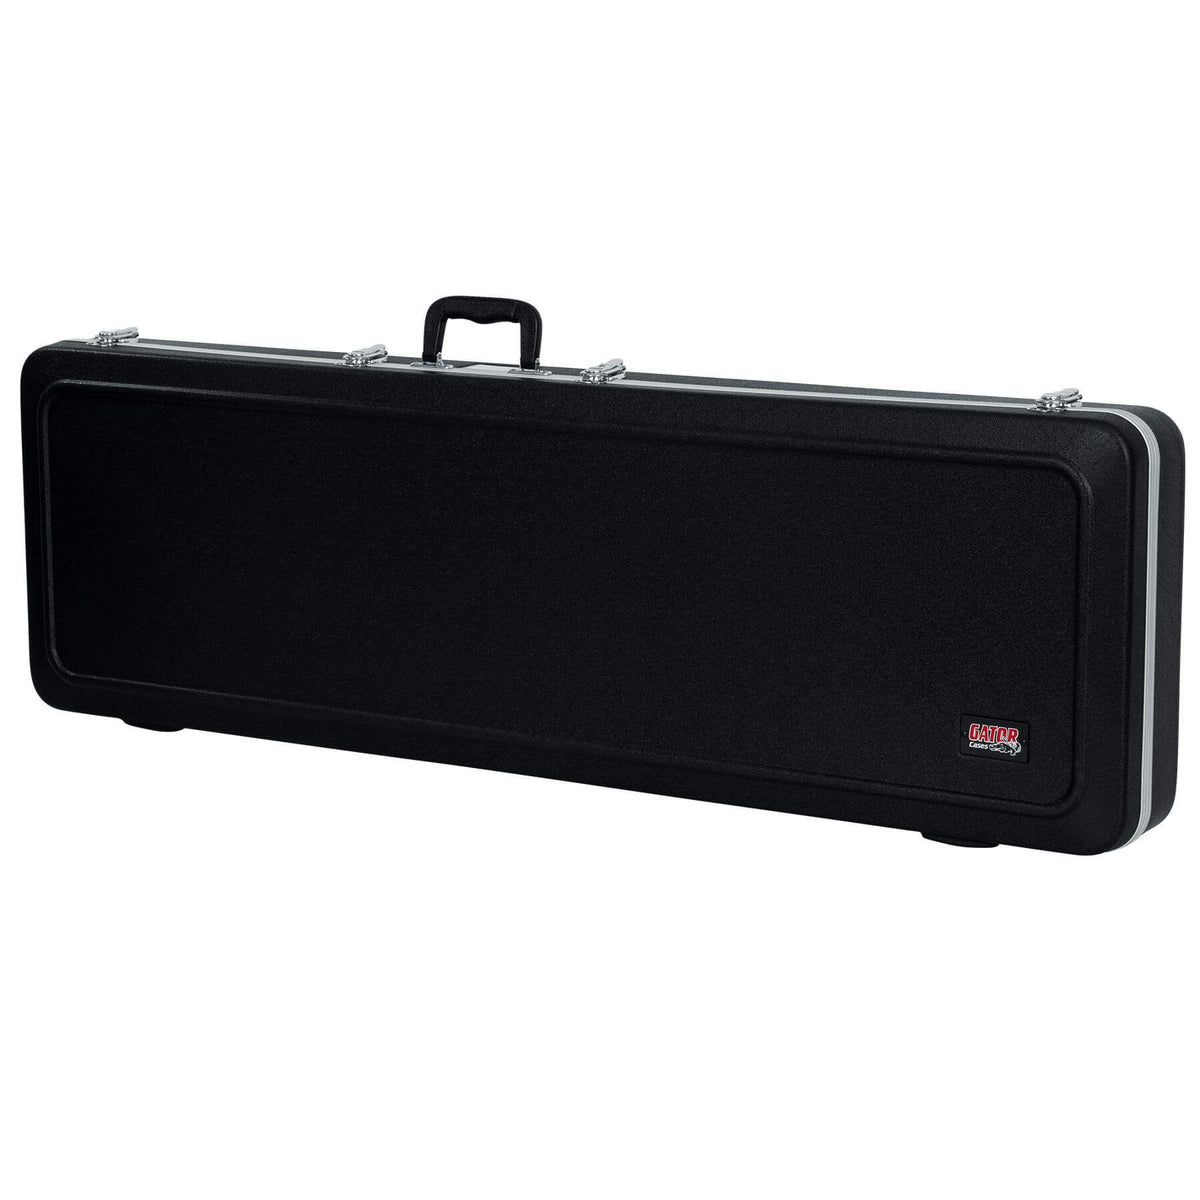 Gator Bass Guitar Case fits Ibanez SR300, SR305